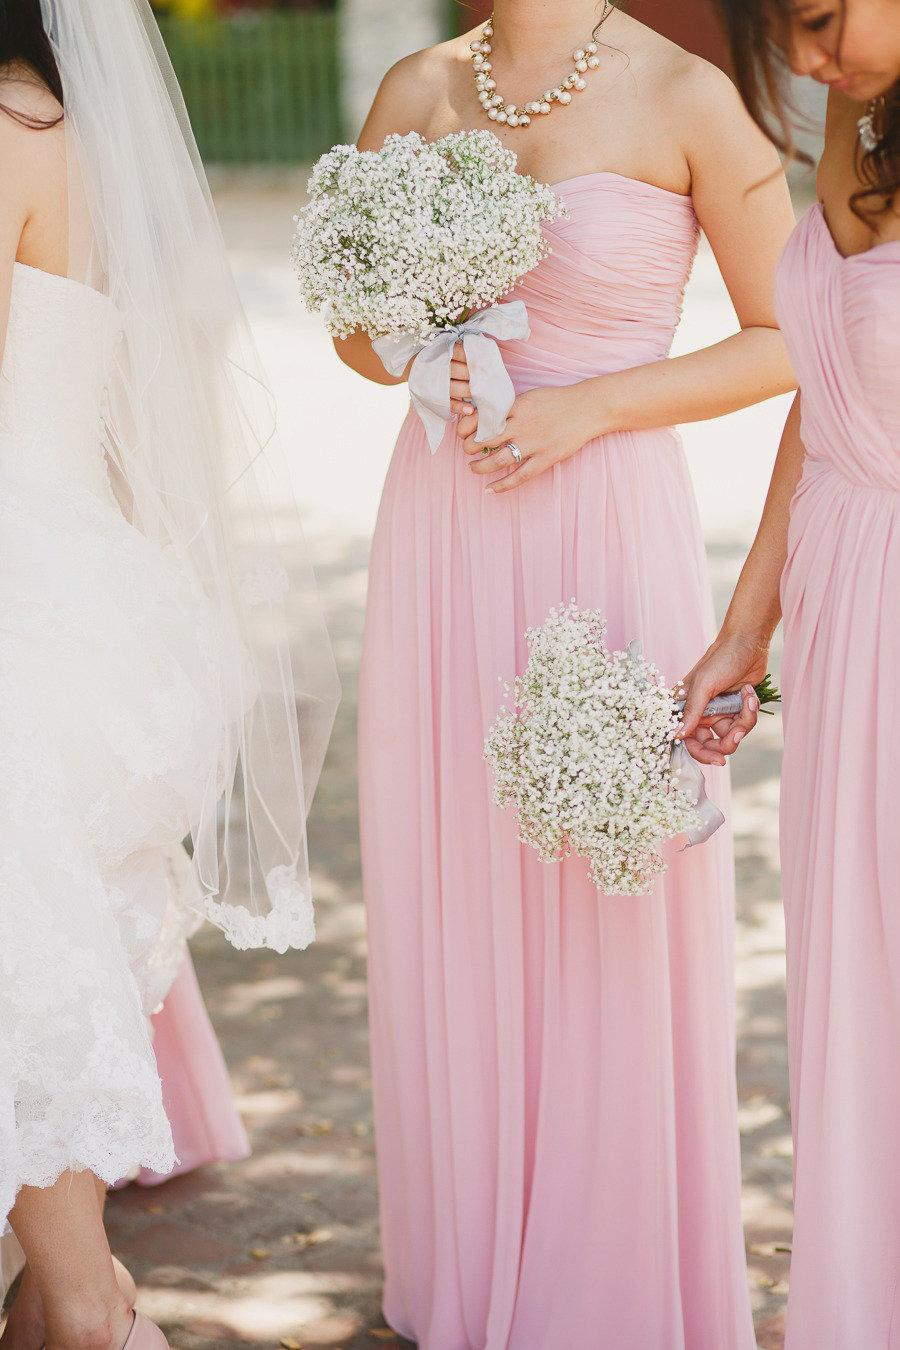 23 pretty spring wedding flowers and ideas bridaltweet wedding spring wedding flowers mightylinksfo